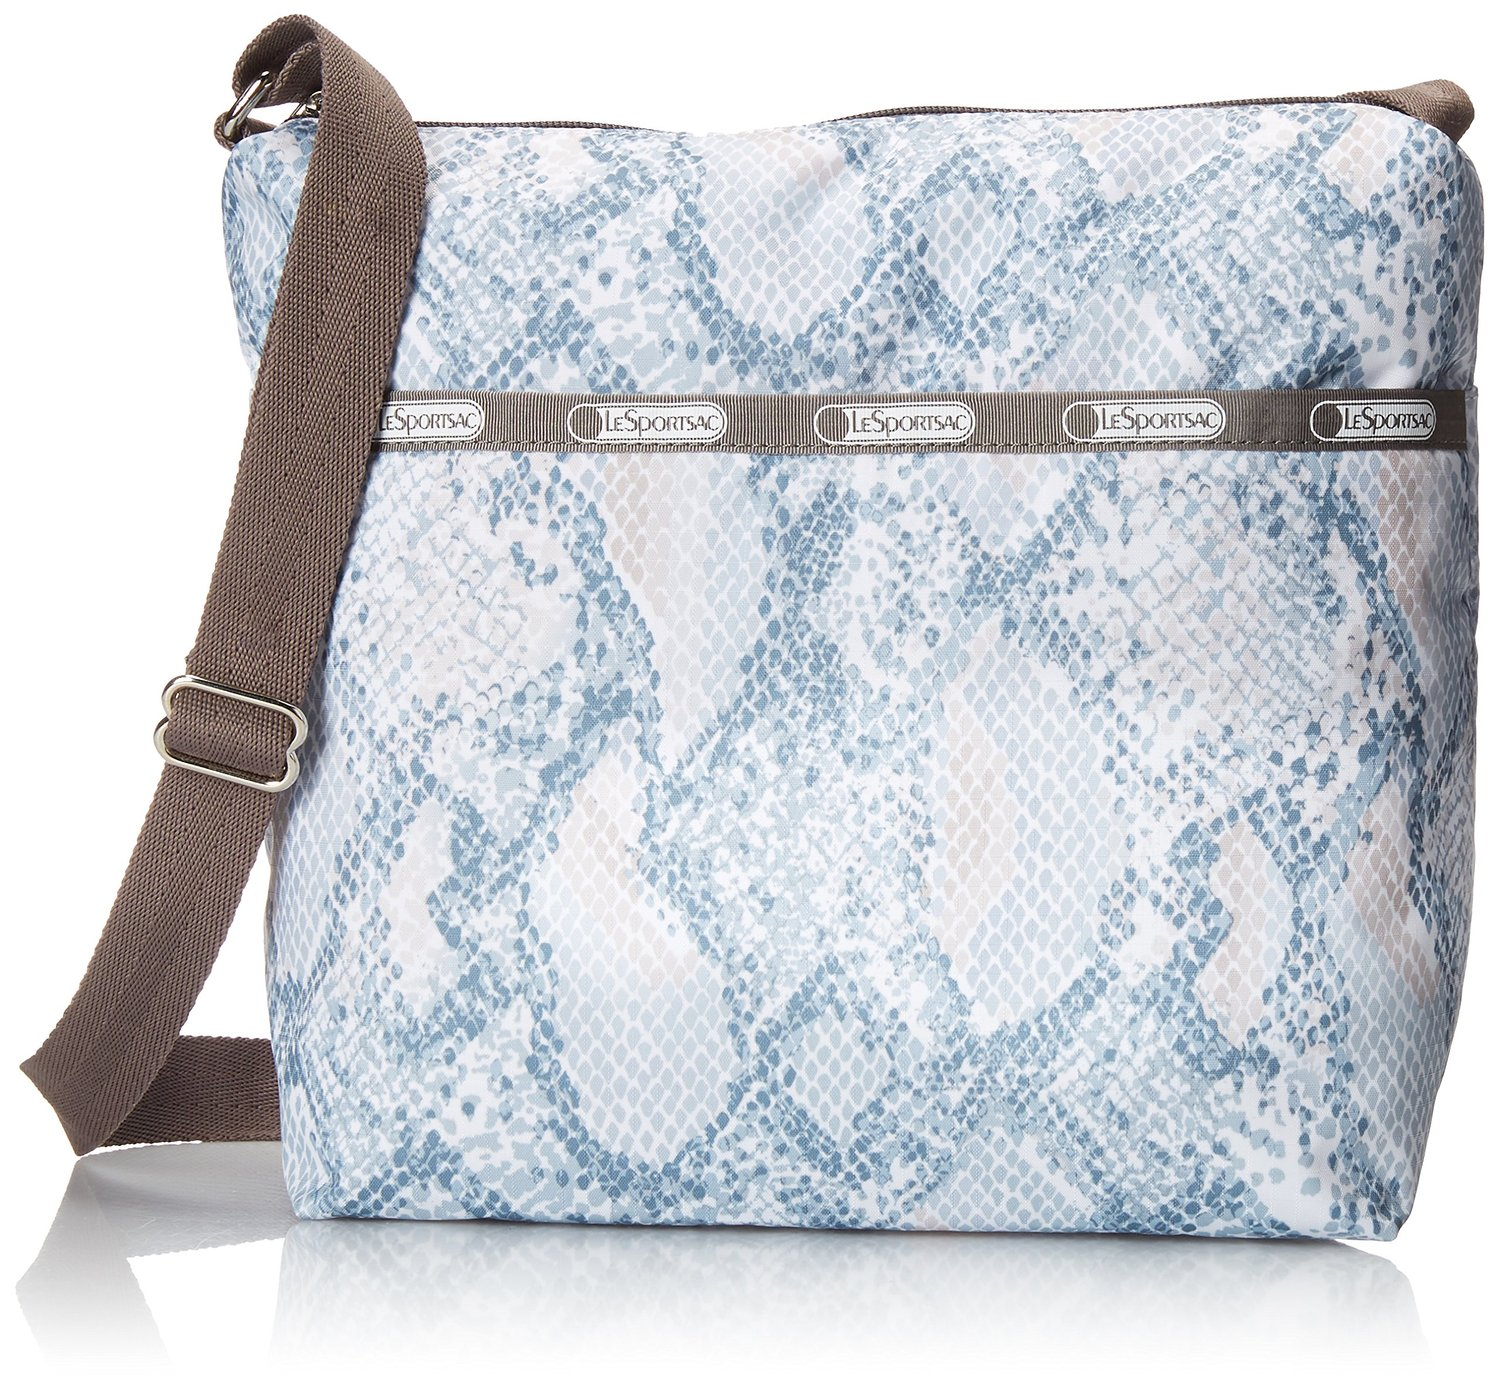 LeSportsac Small Cleo Handbag, Caraway Floral, One Size: Handbags: Amazon.com